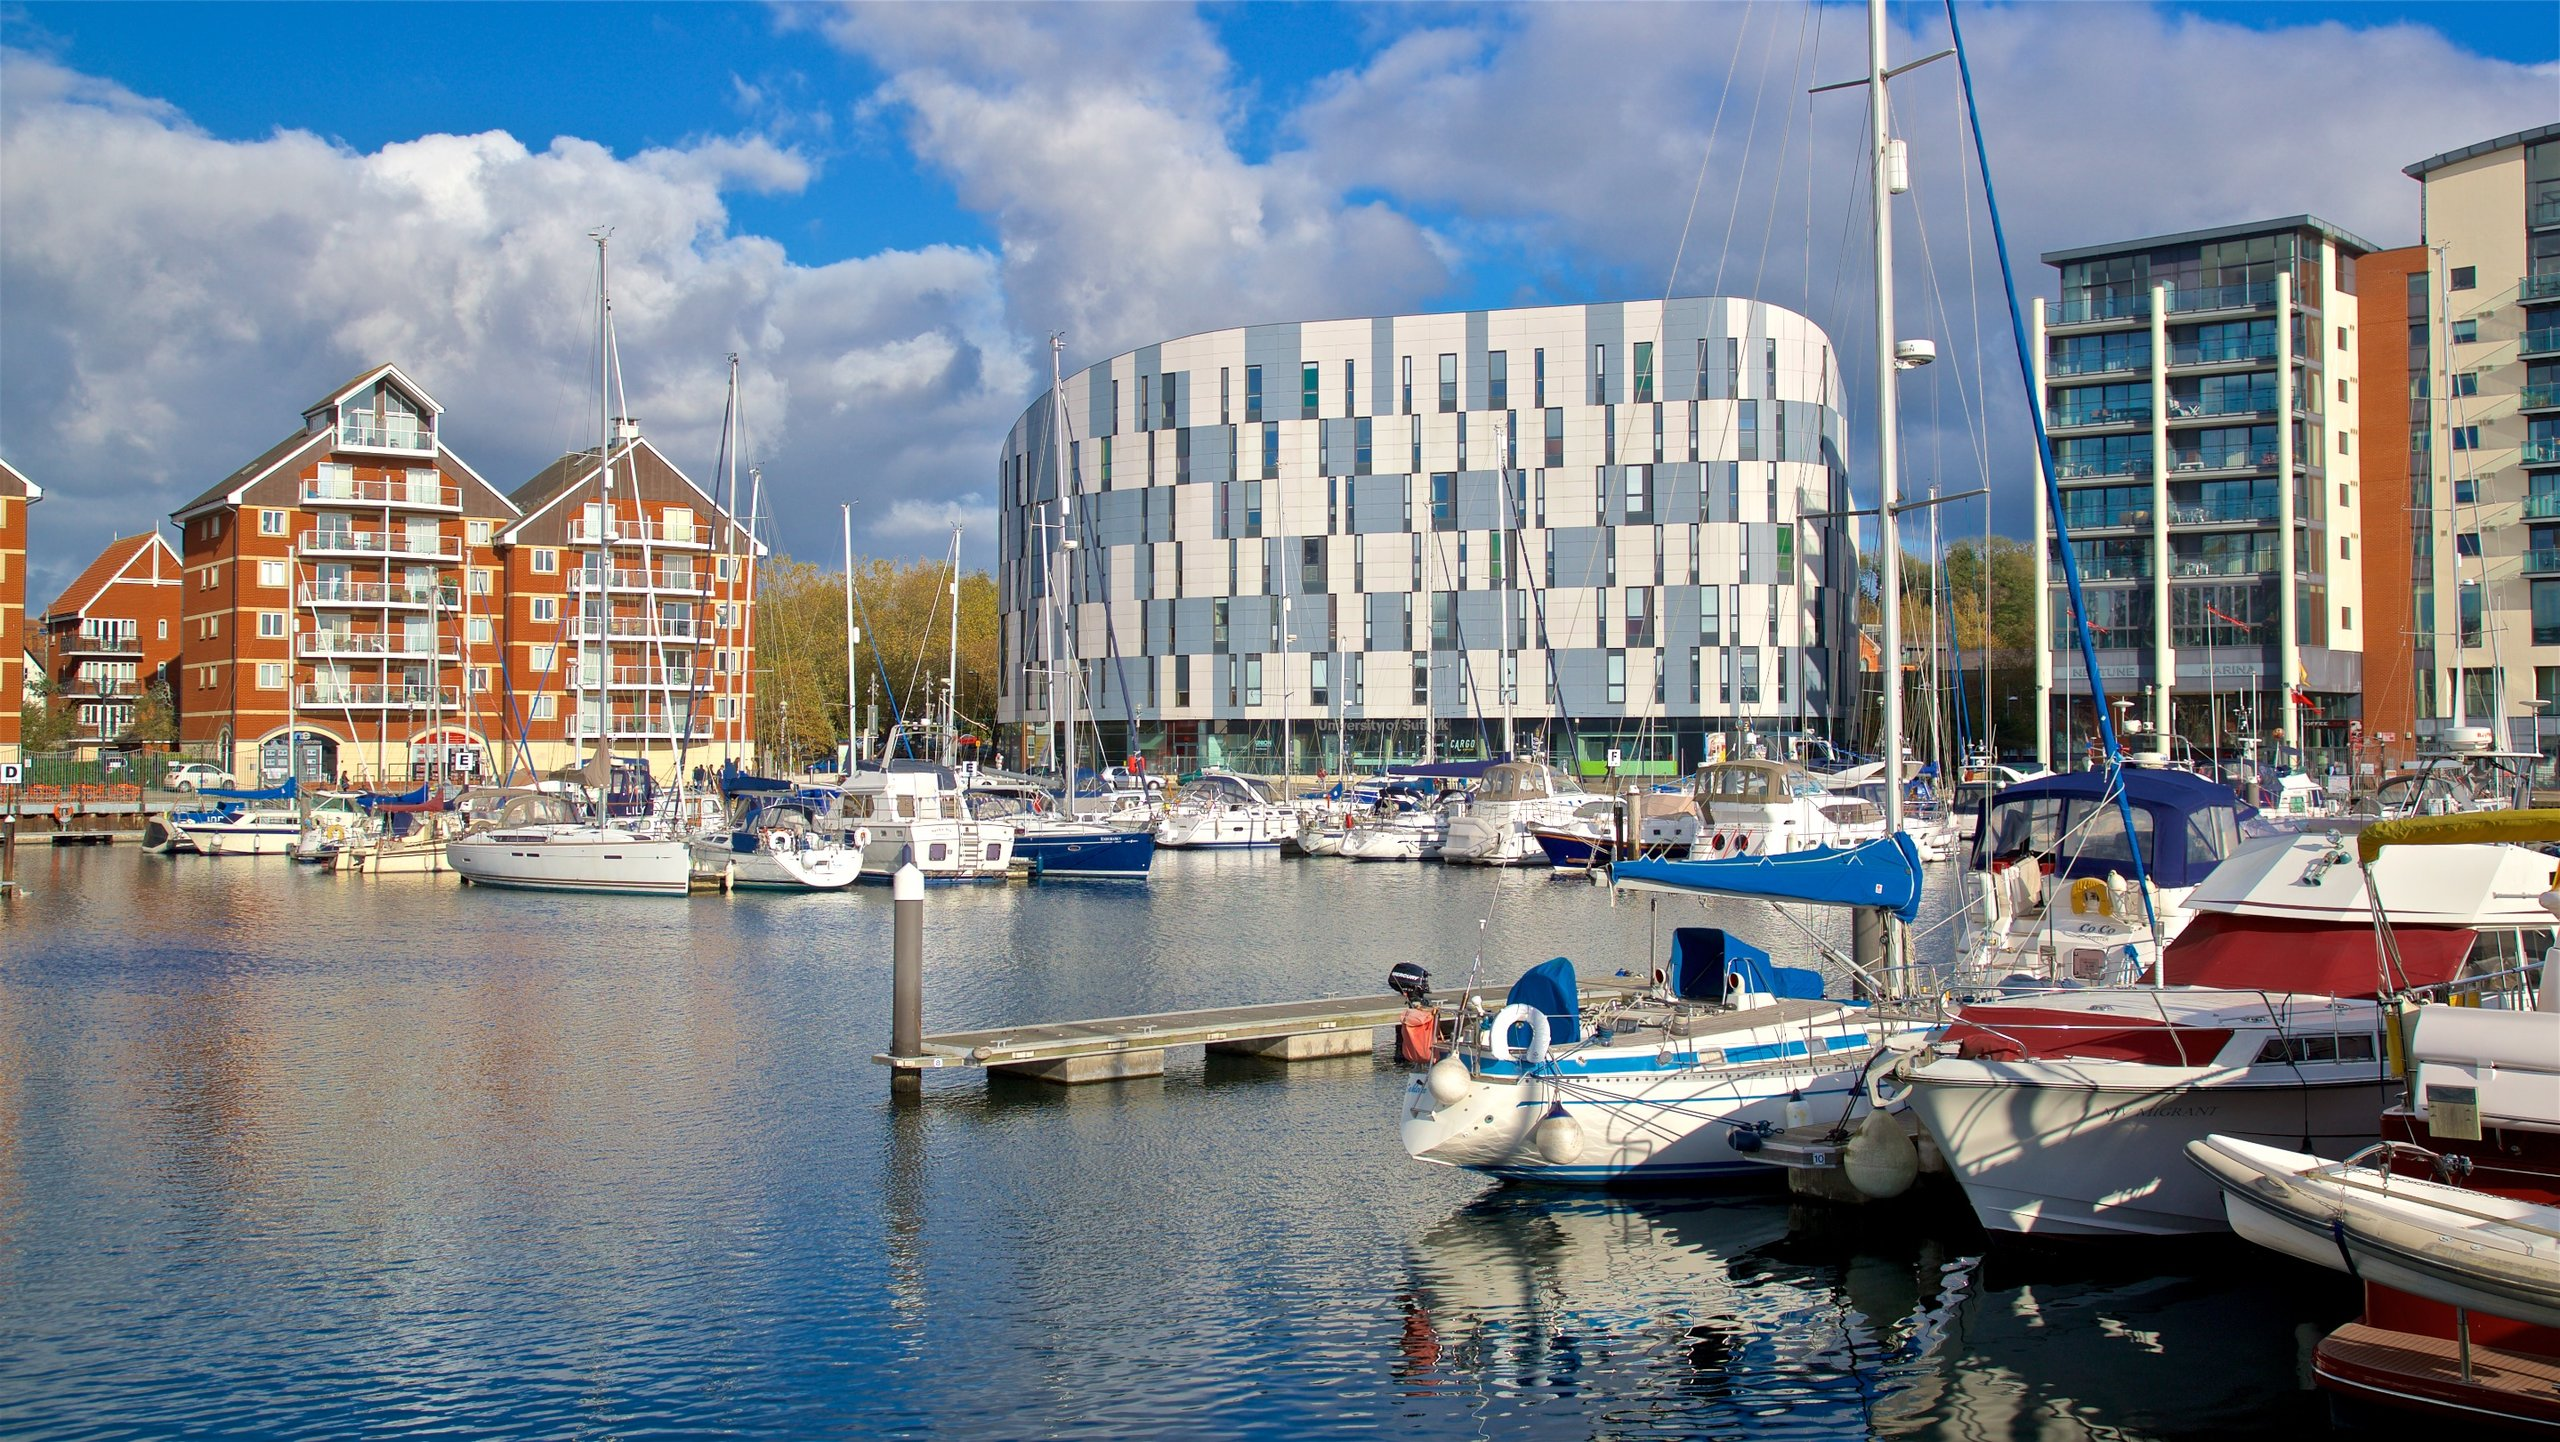 Visit Suffolk: 2021 Travel Guide for Suffolk, England | Expedia